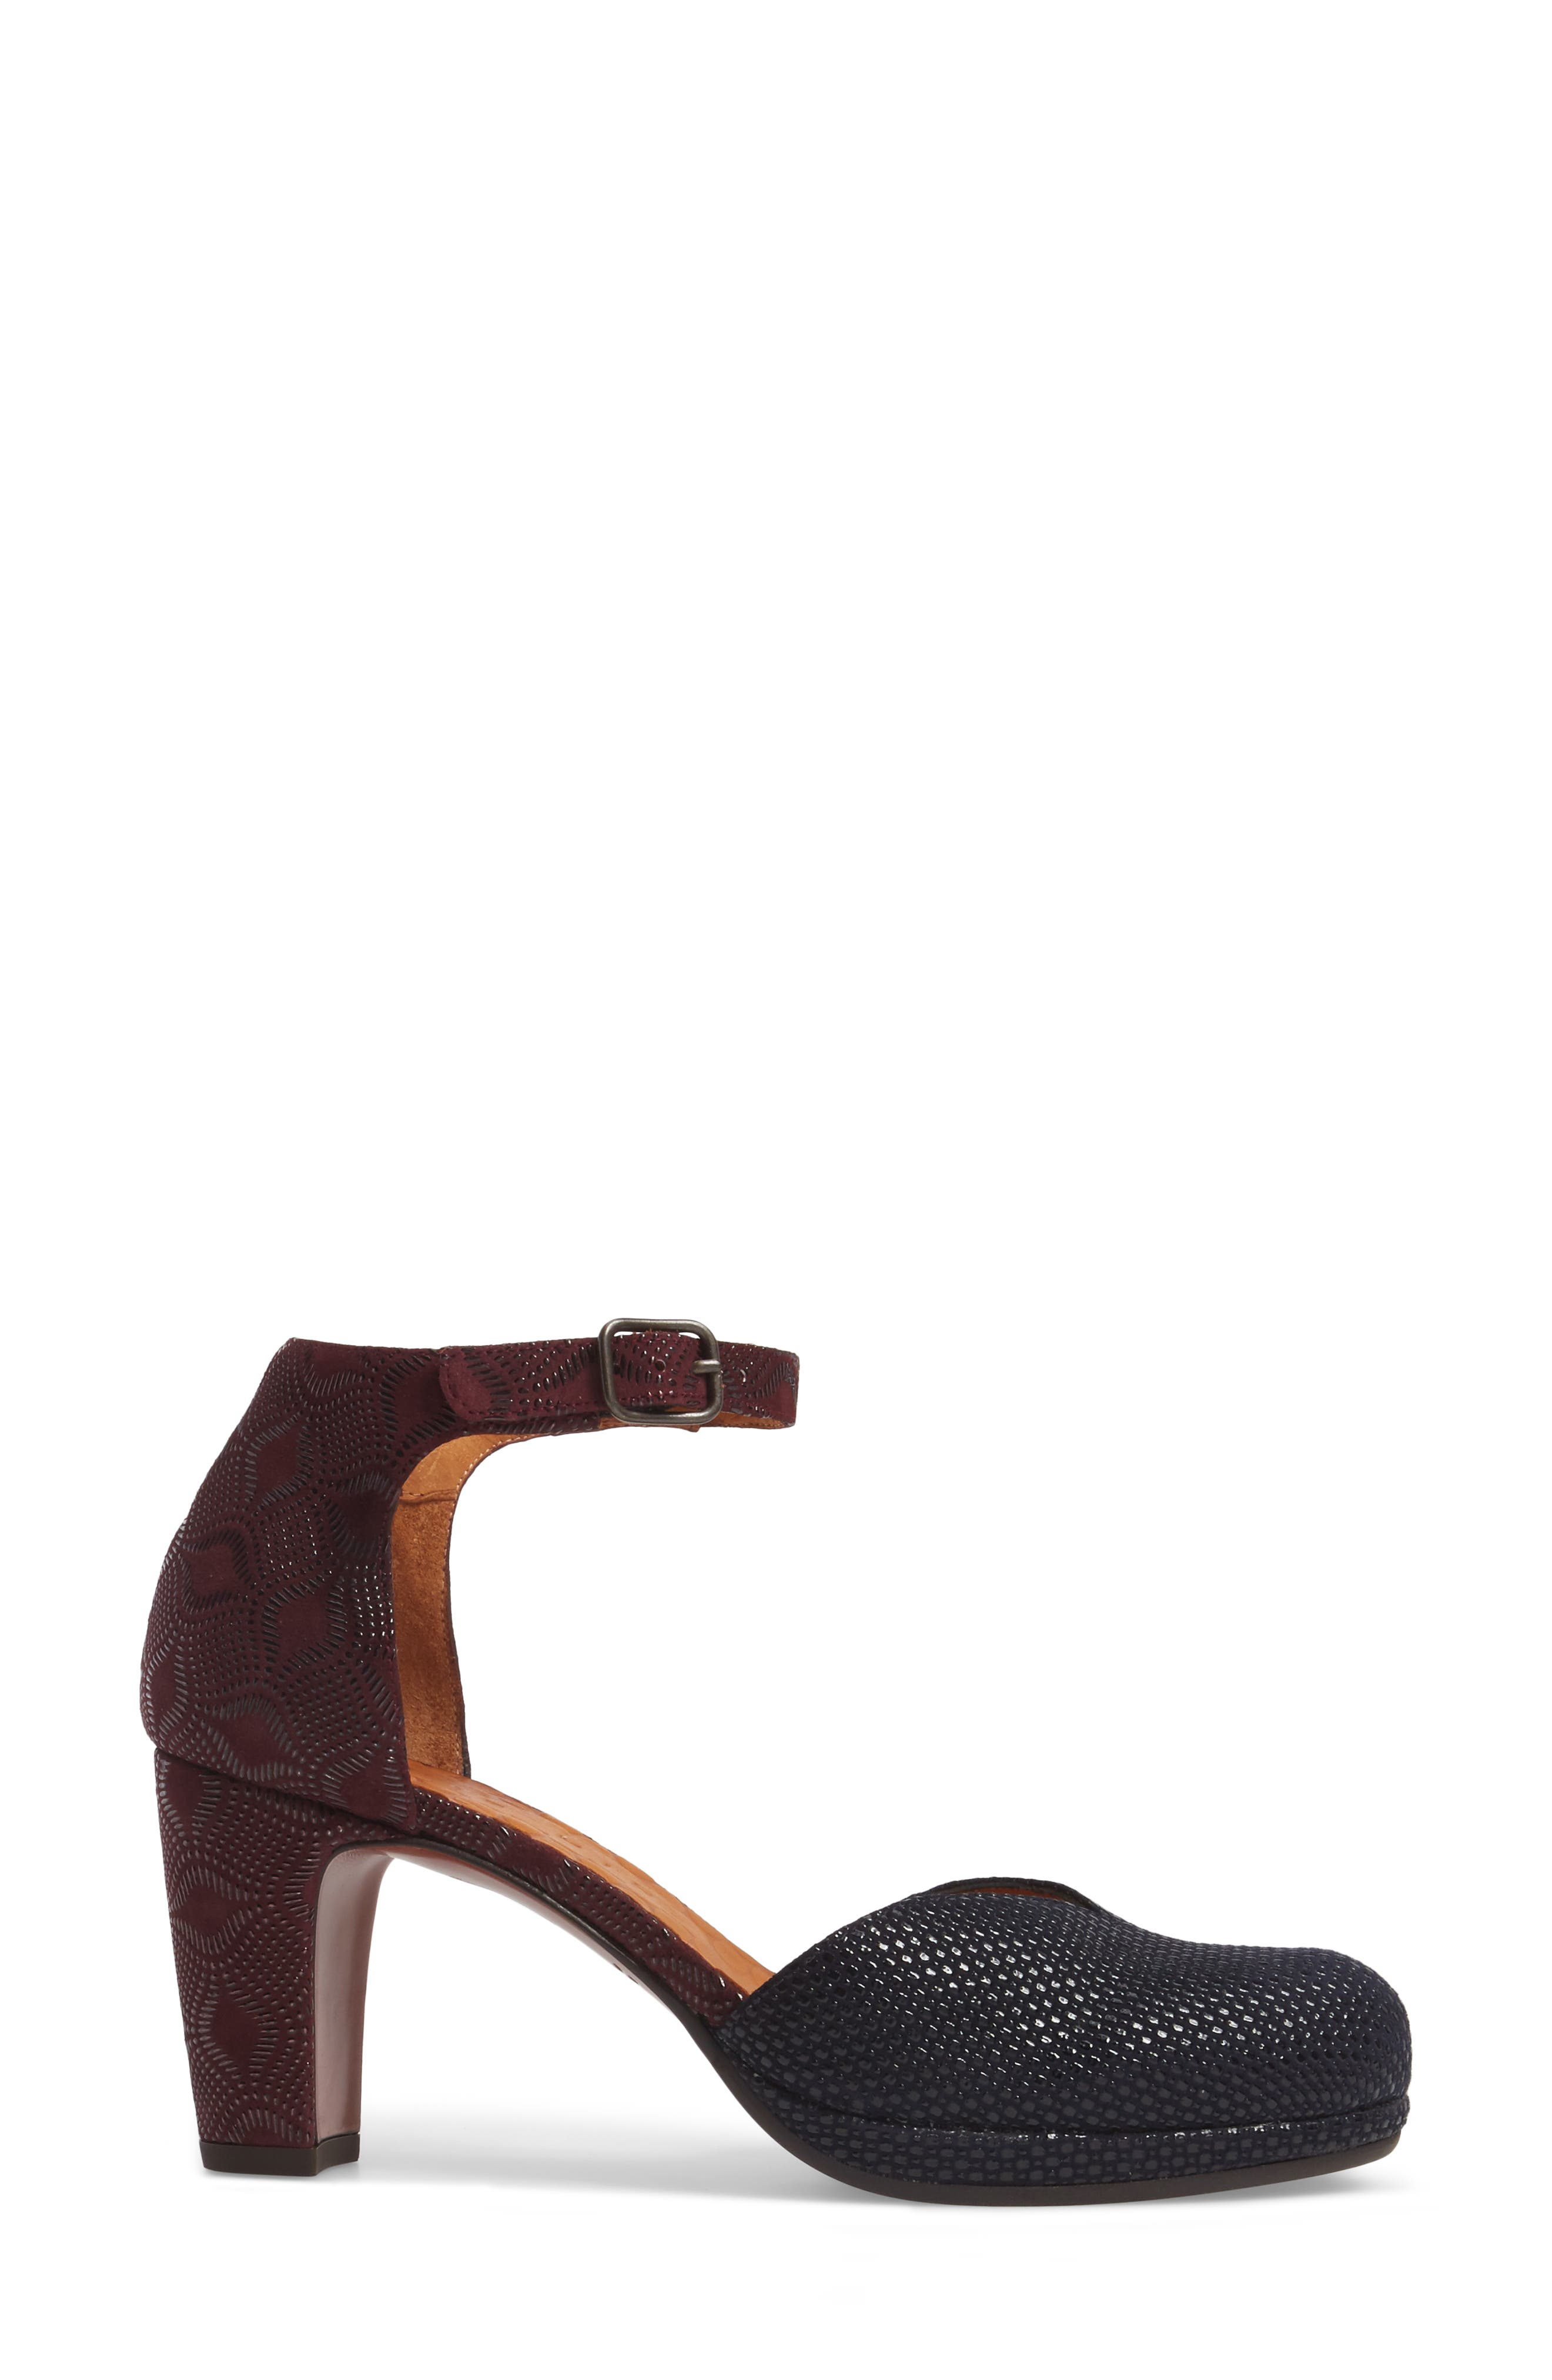 Alternate Image 3  - Chie Mihara Maho d'Orsay Ankle Strap Pump (Women)